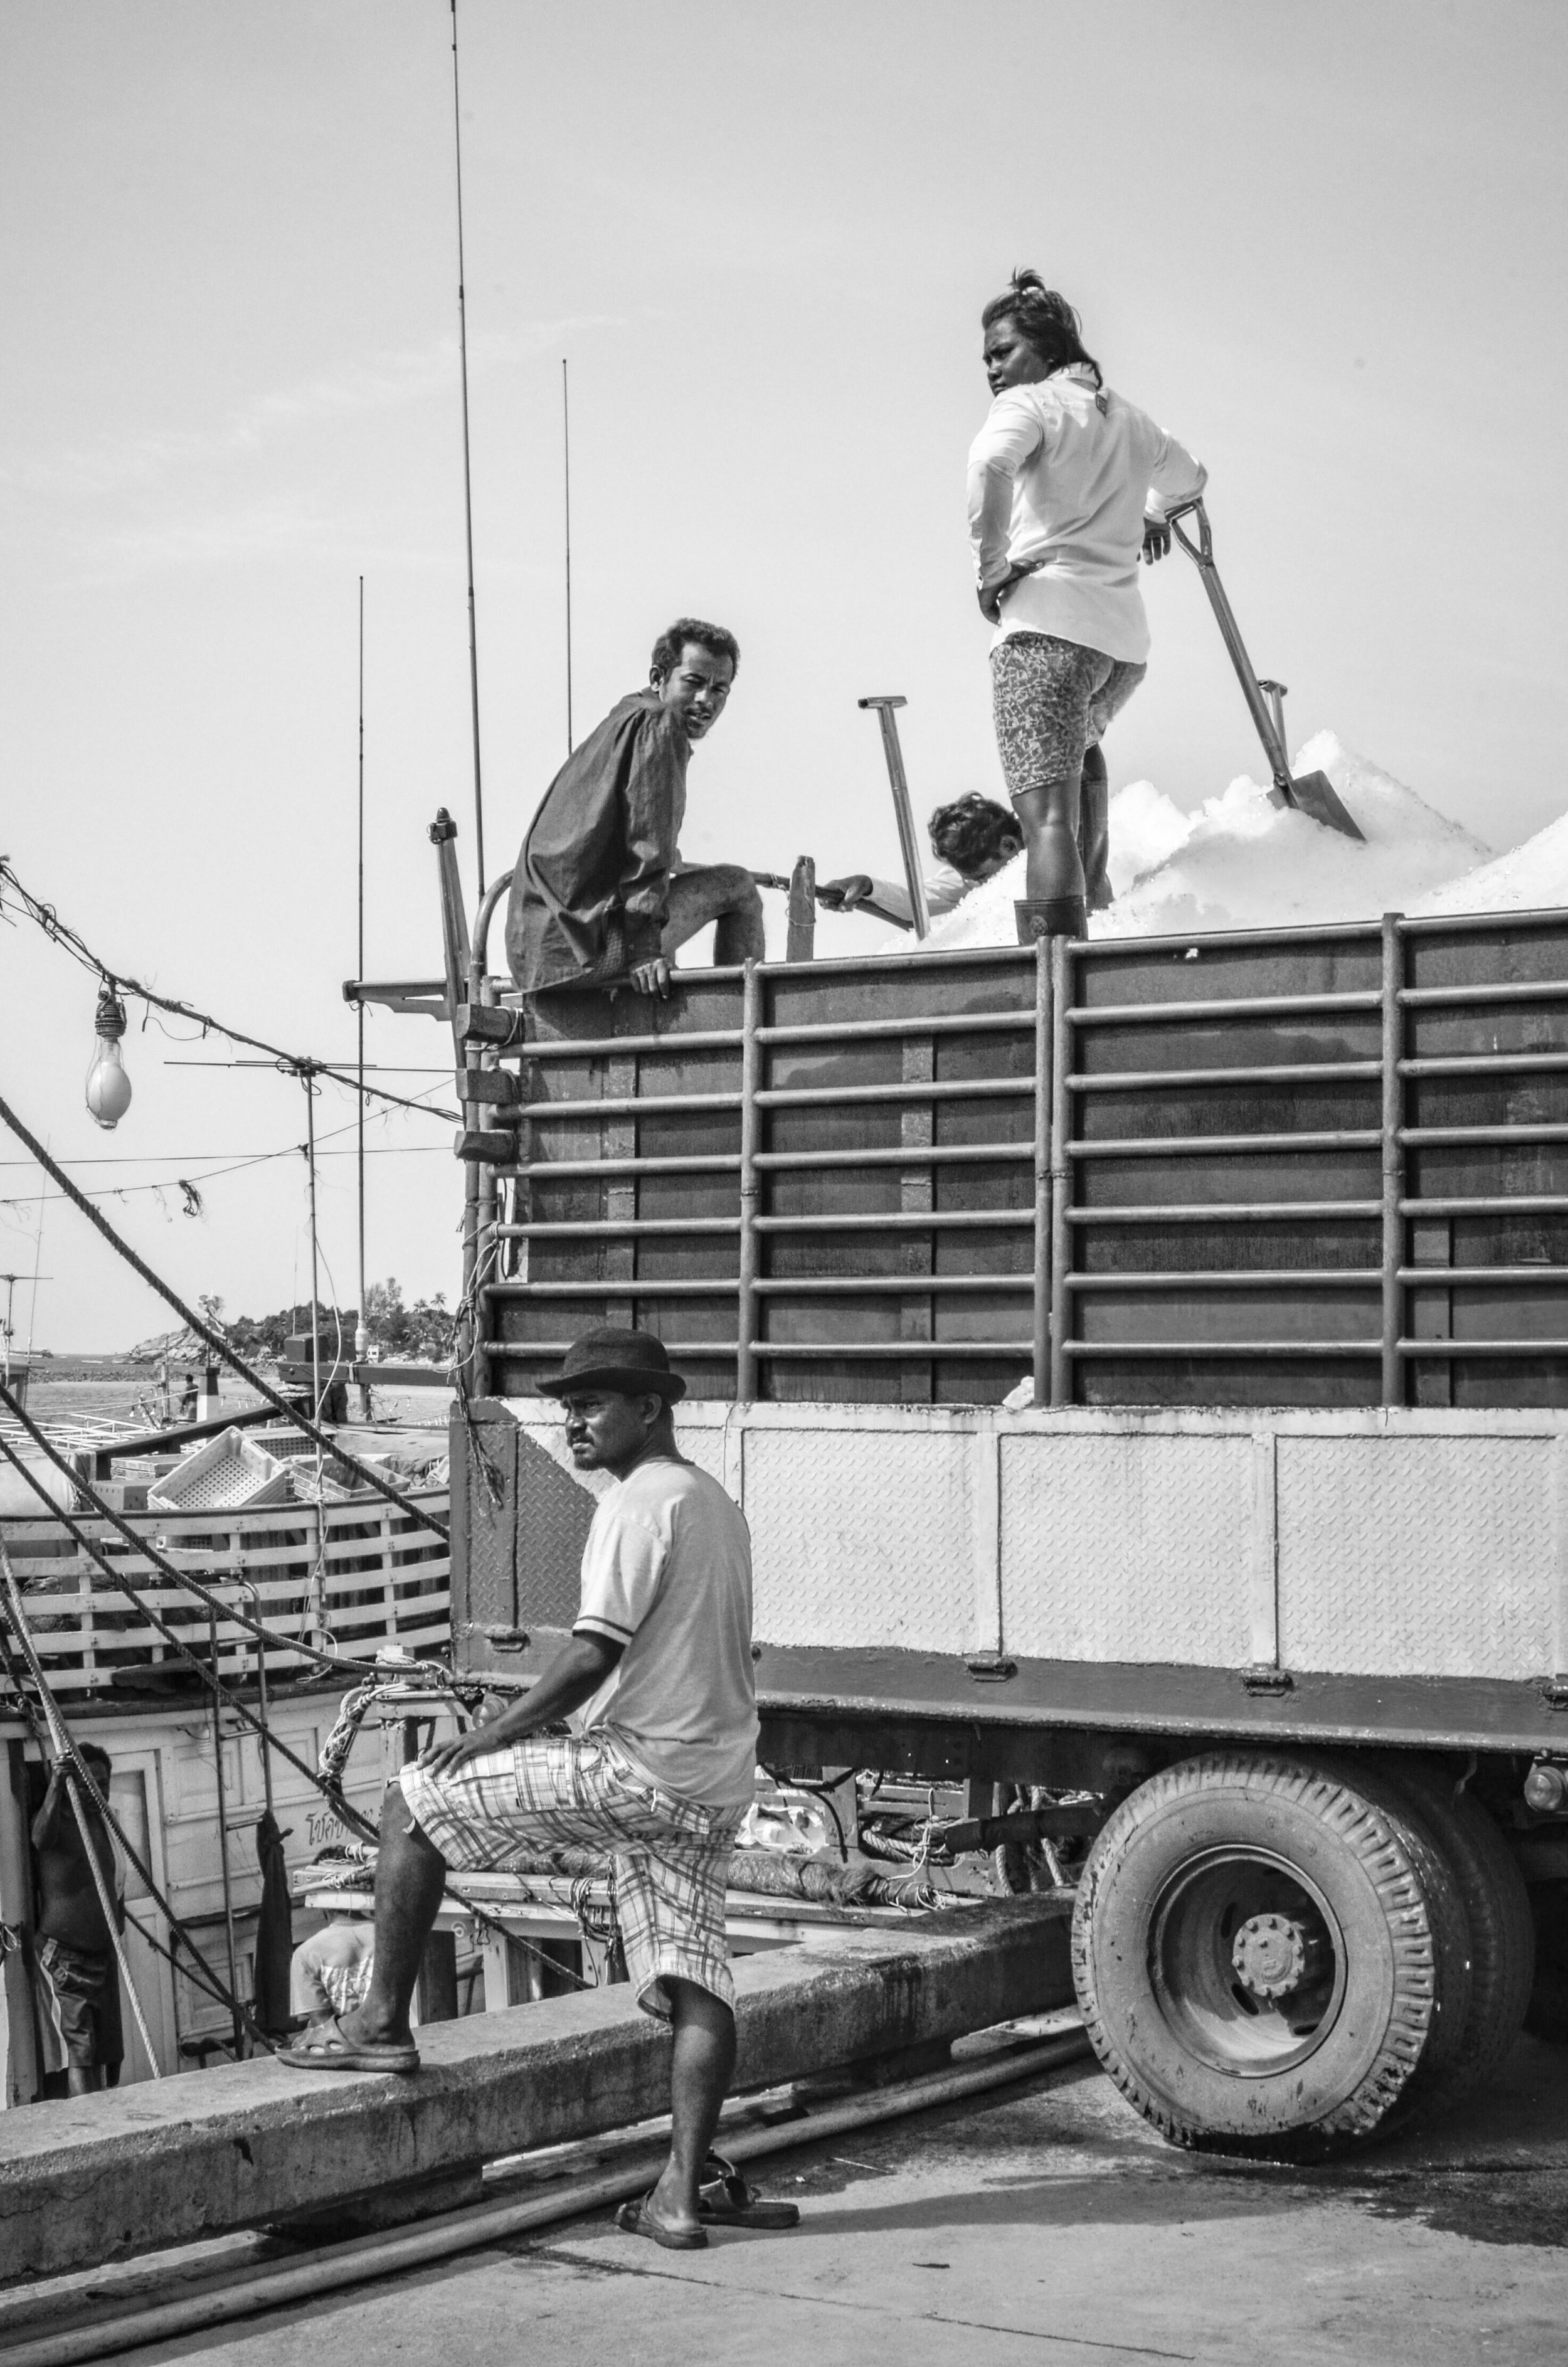 Ice truck and workers, Koh Phangan pier, Thailand